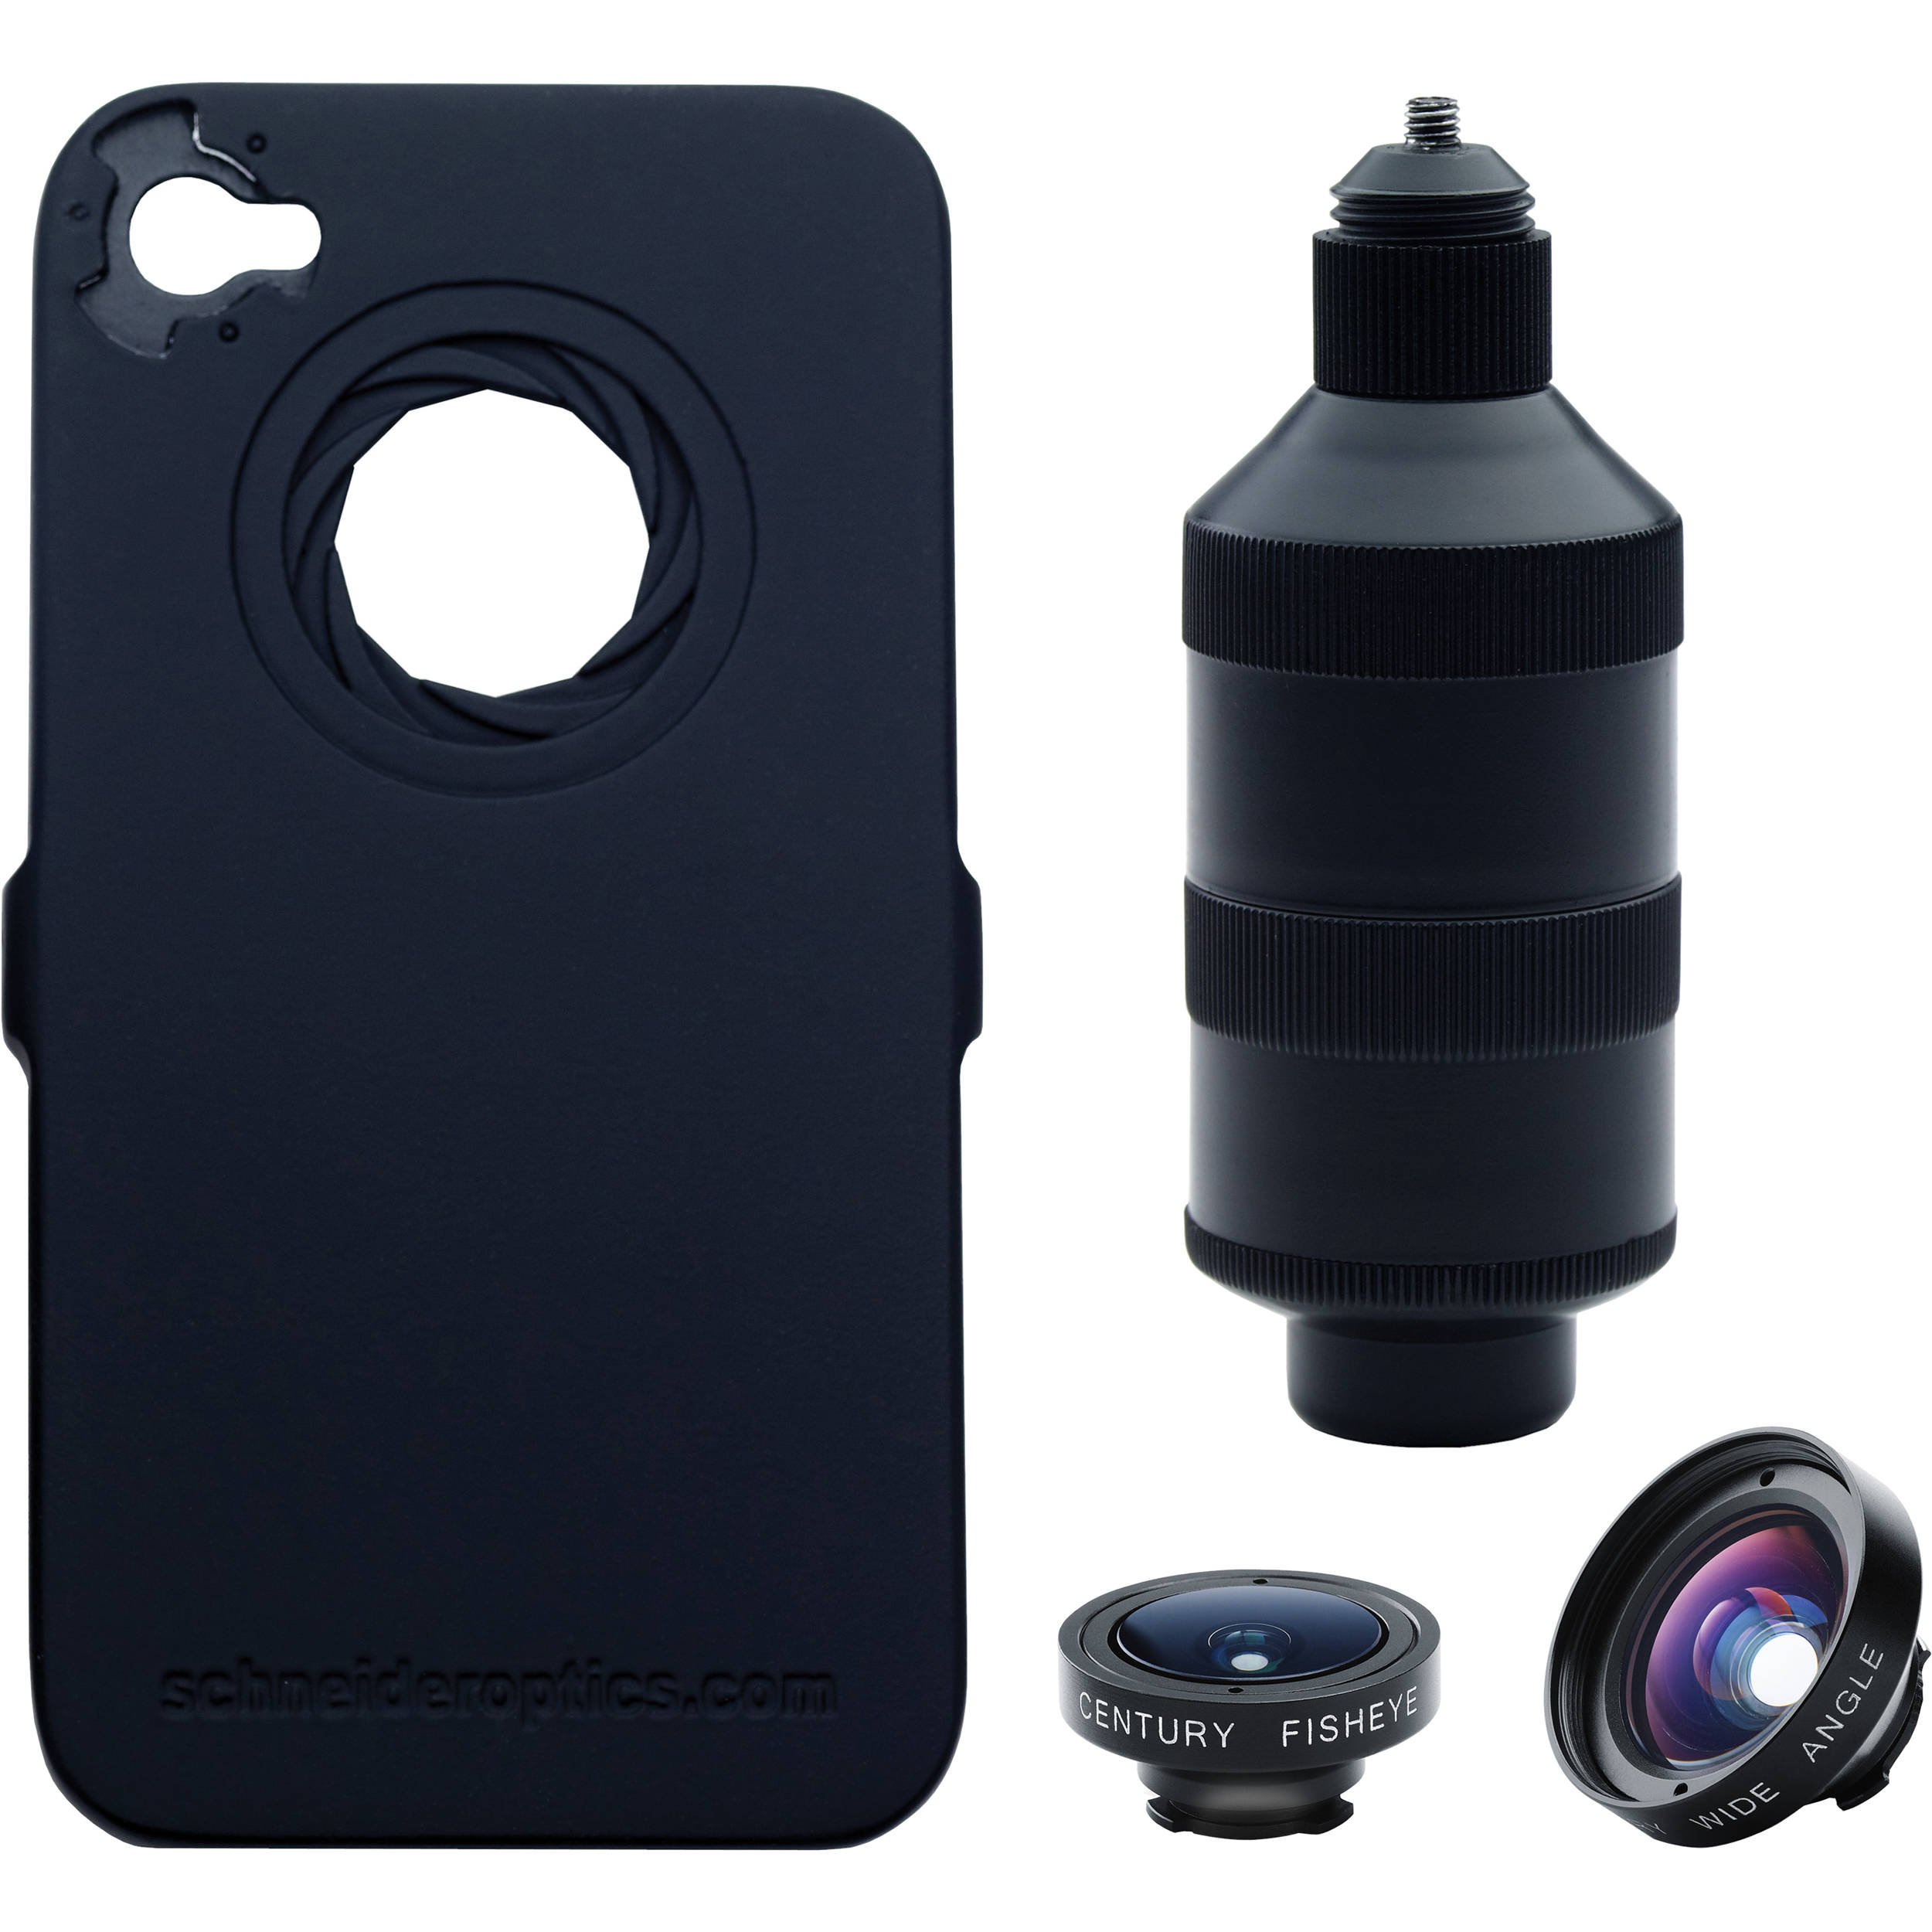 huge discount dc10e 29813 iPro Lens by Schneider Optics iPro Lens System for iPhone 4/4S